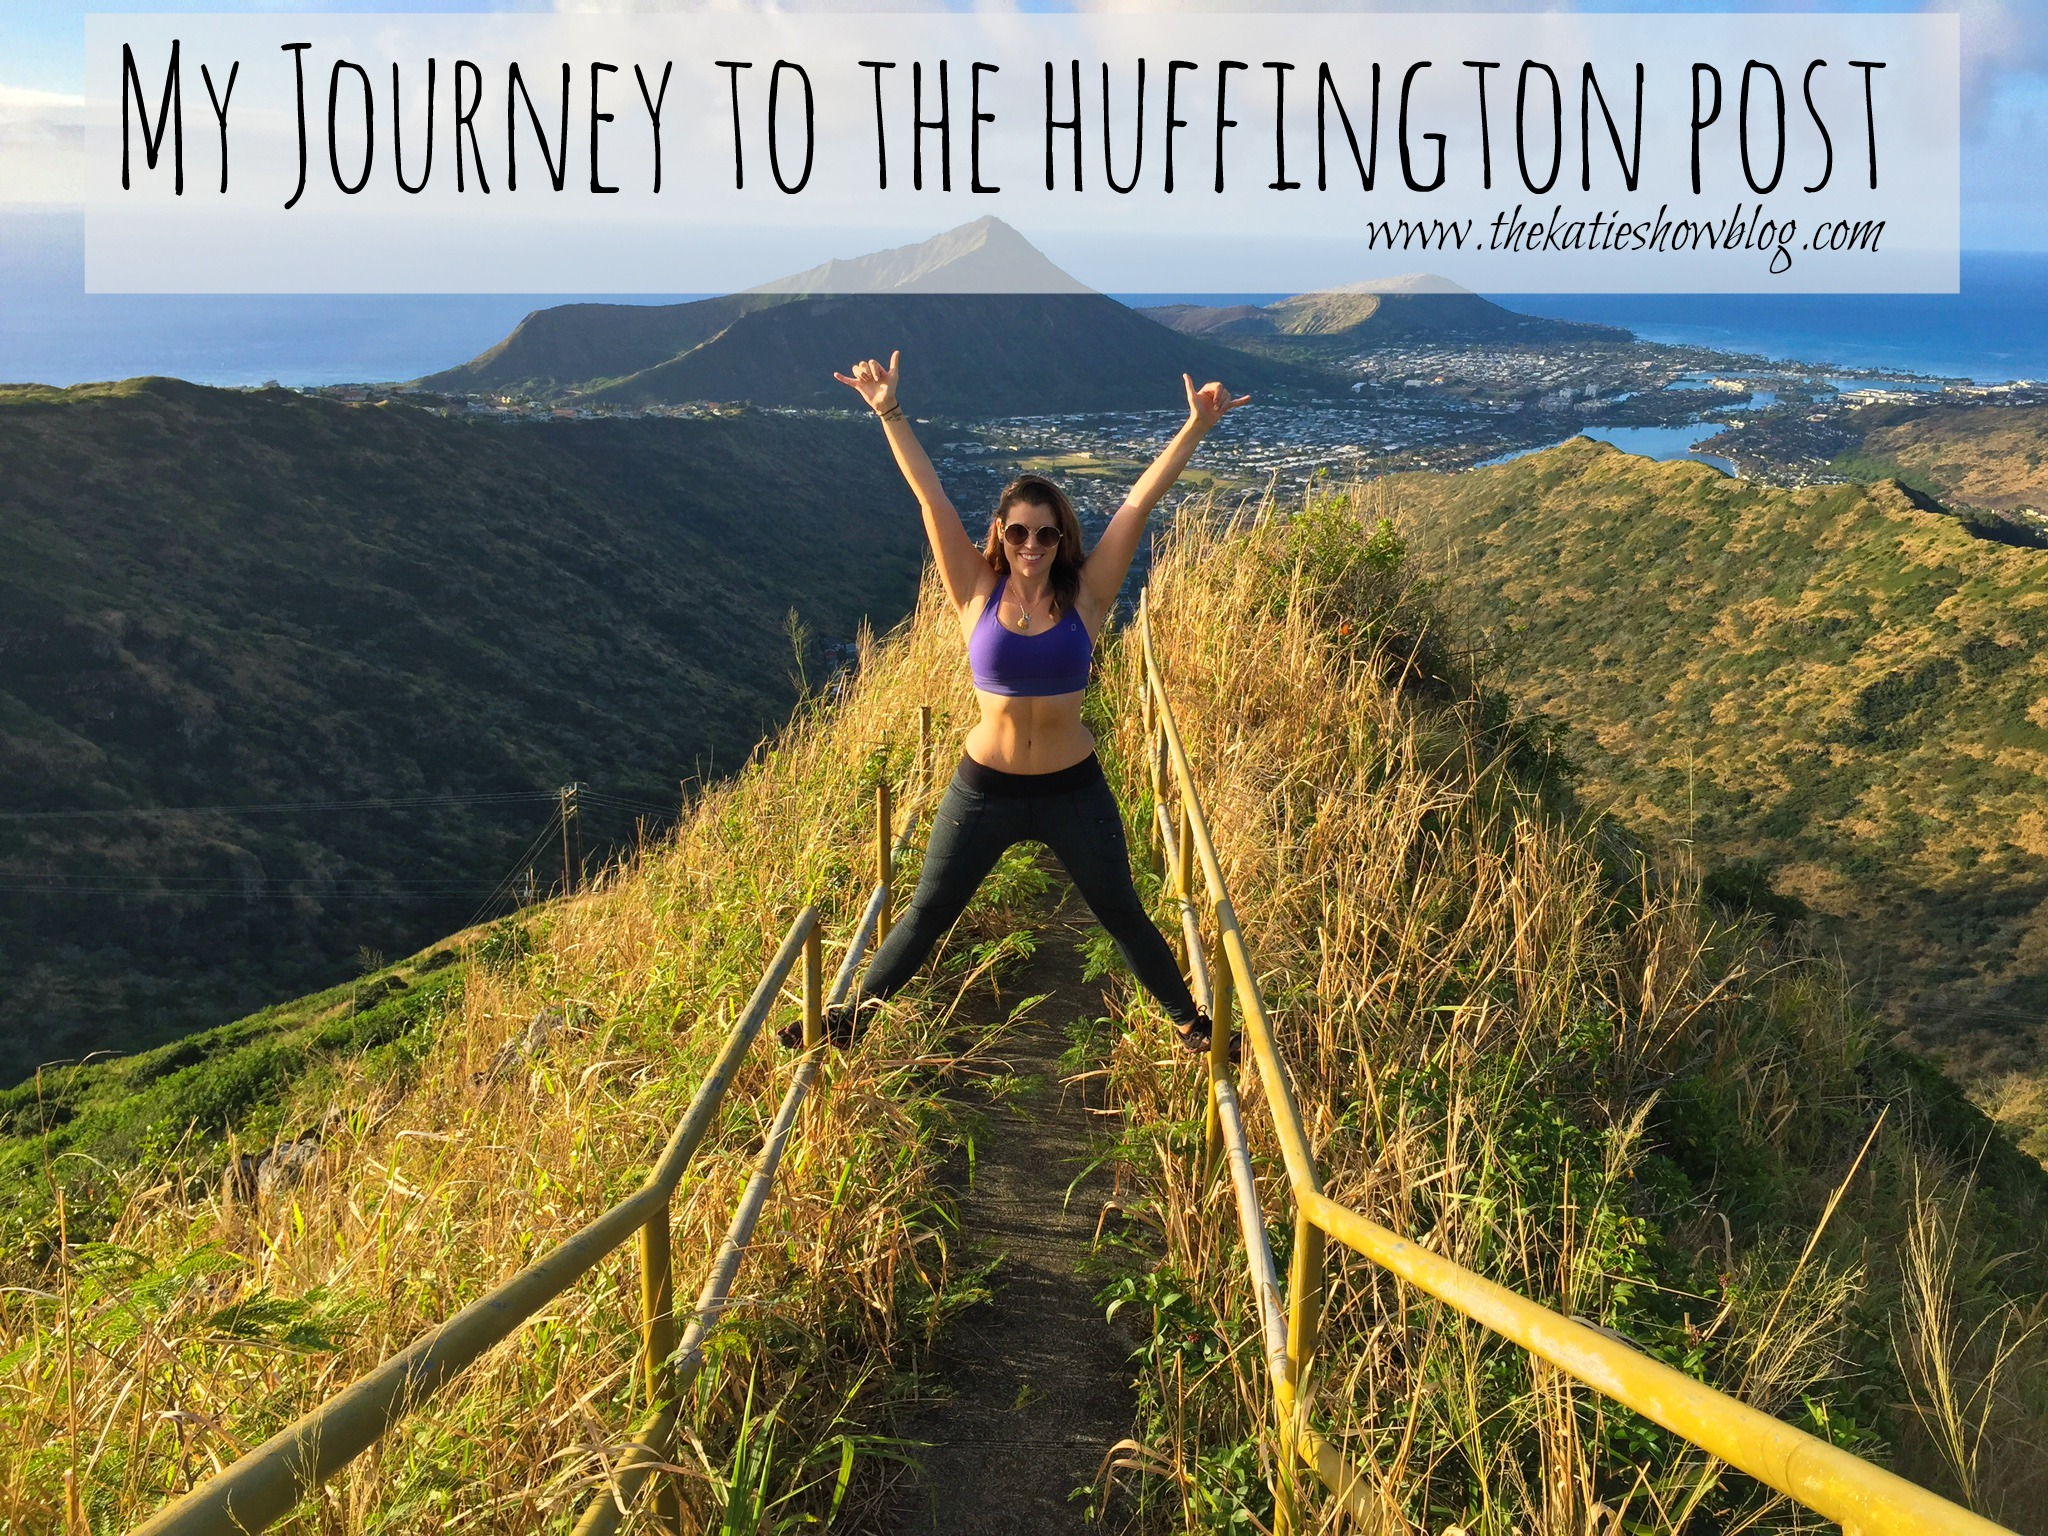 Journey to the Huffington Post